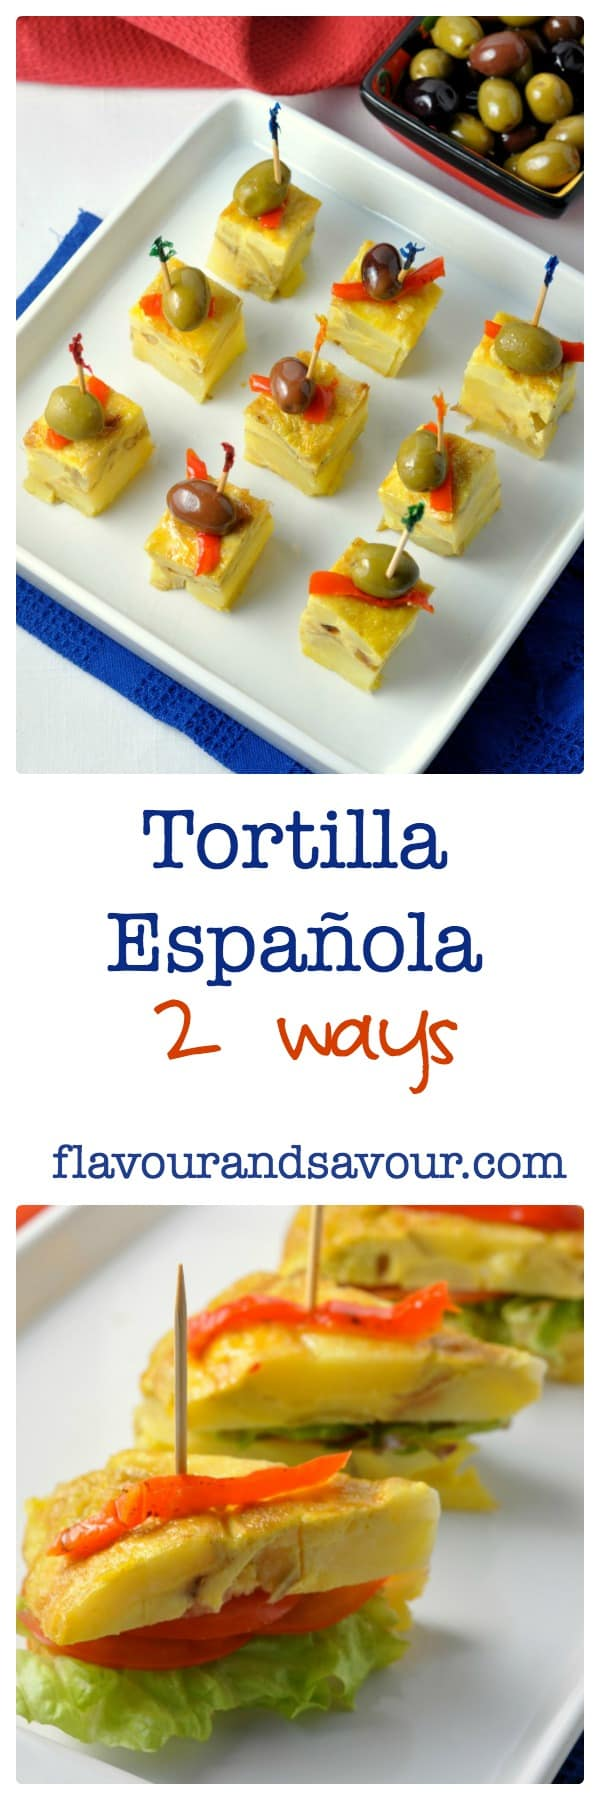 Tortilla Española. Traditional Spanish tapa two ways |www.flavourandsavour.com